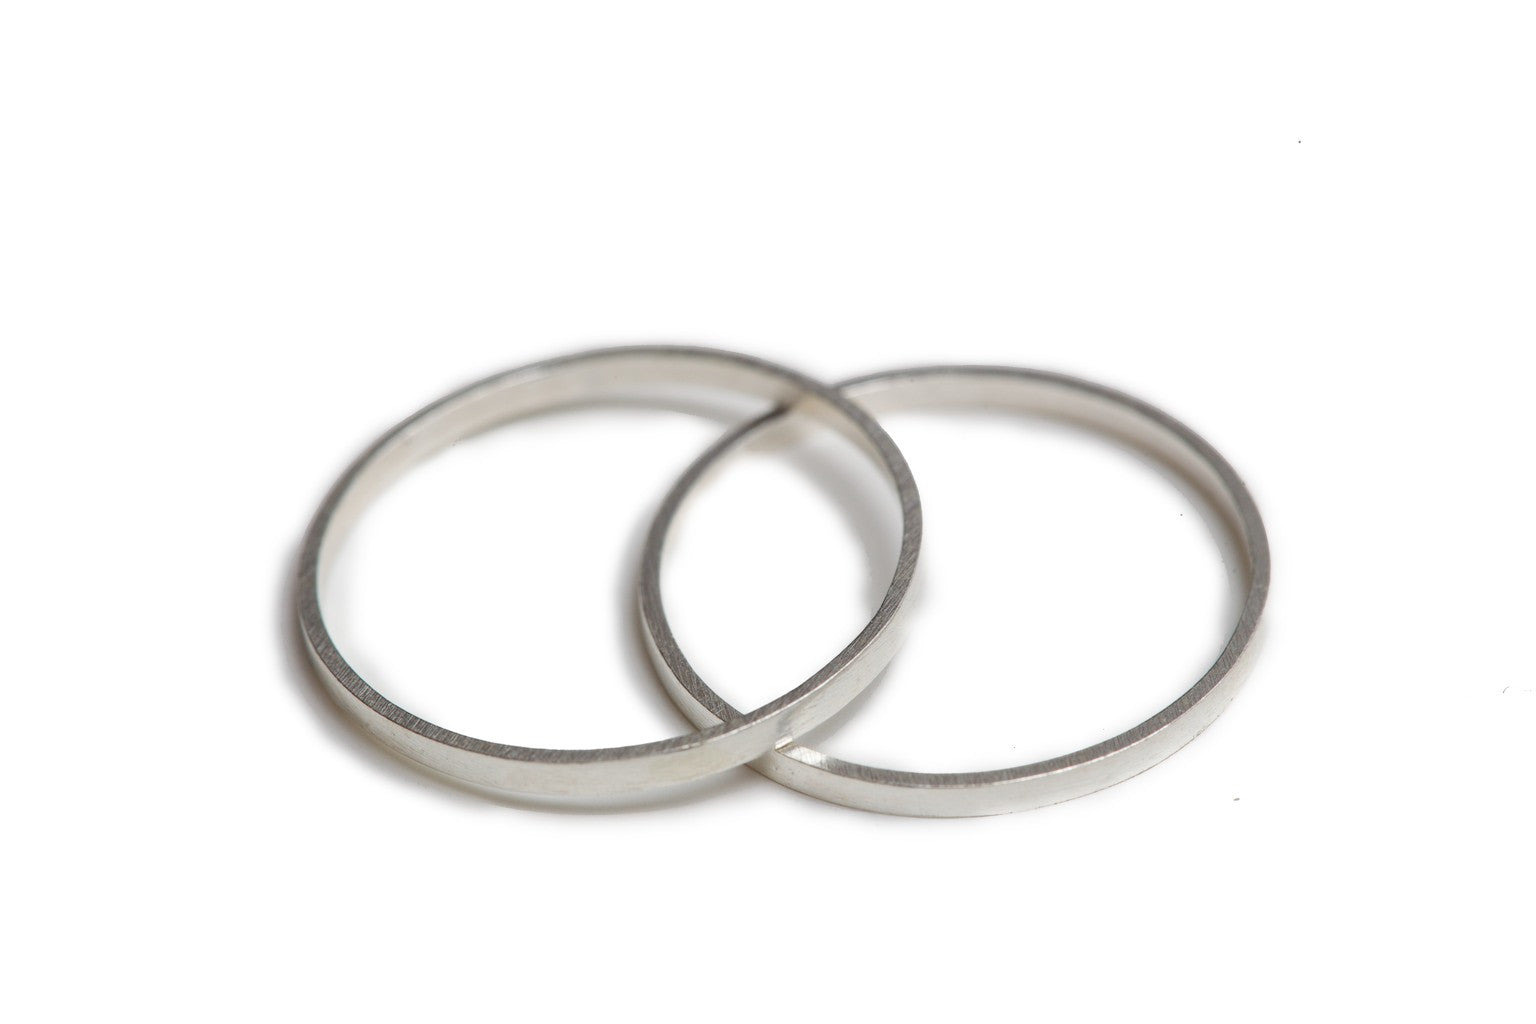 Stackable Midi Rings - Set of 2